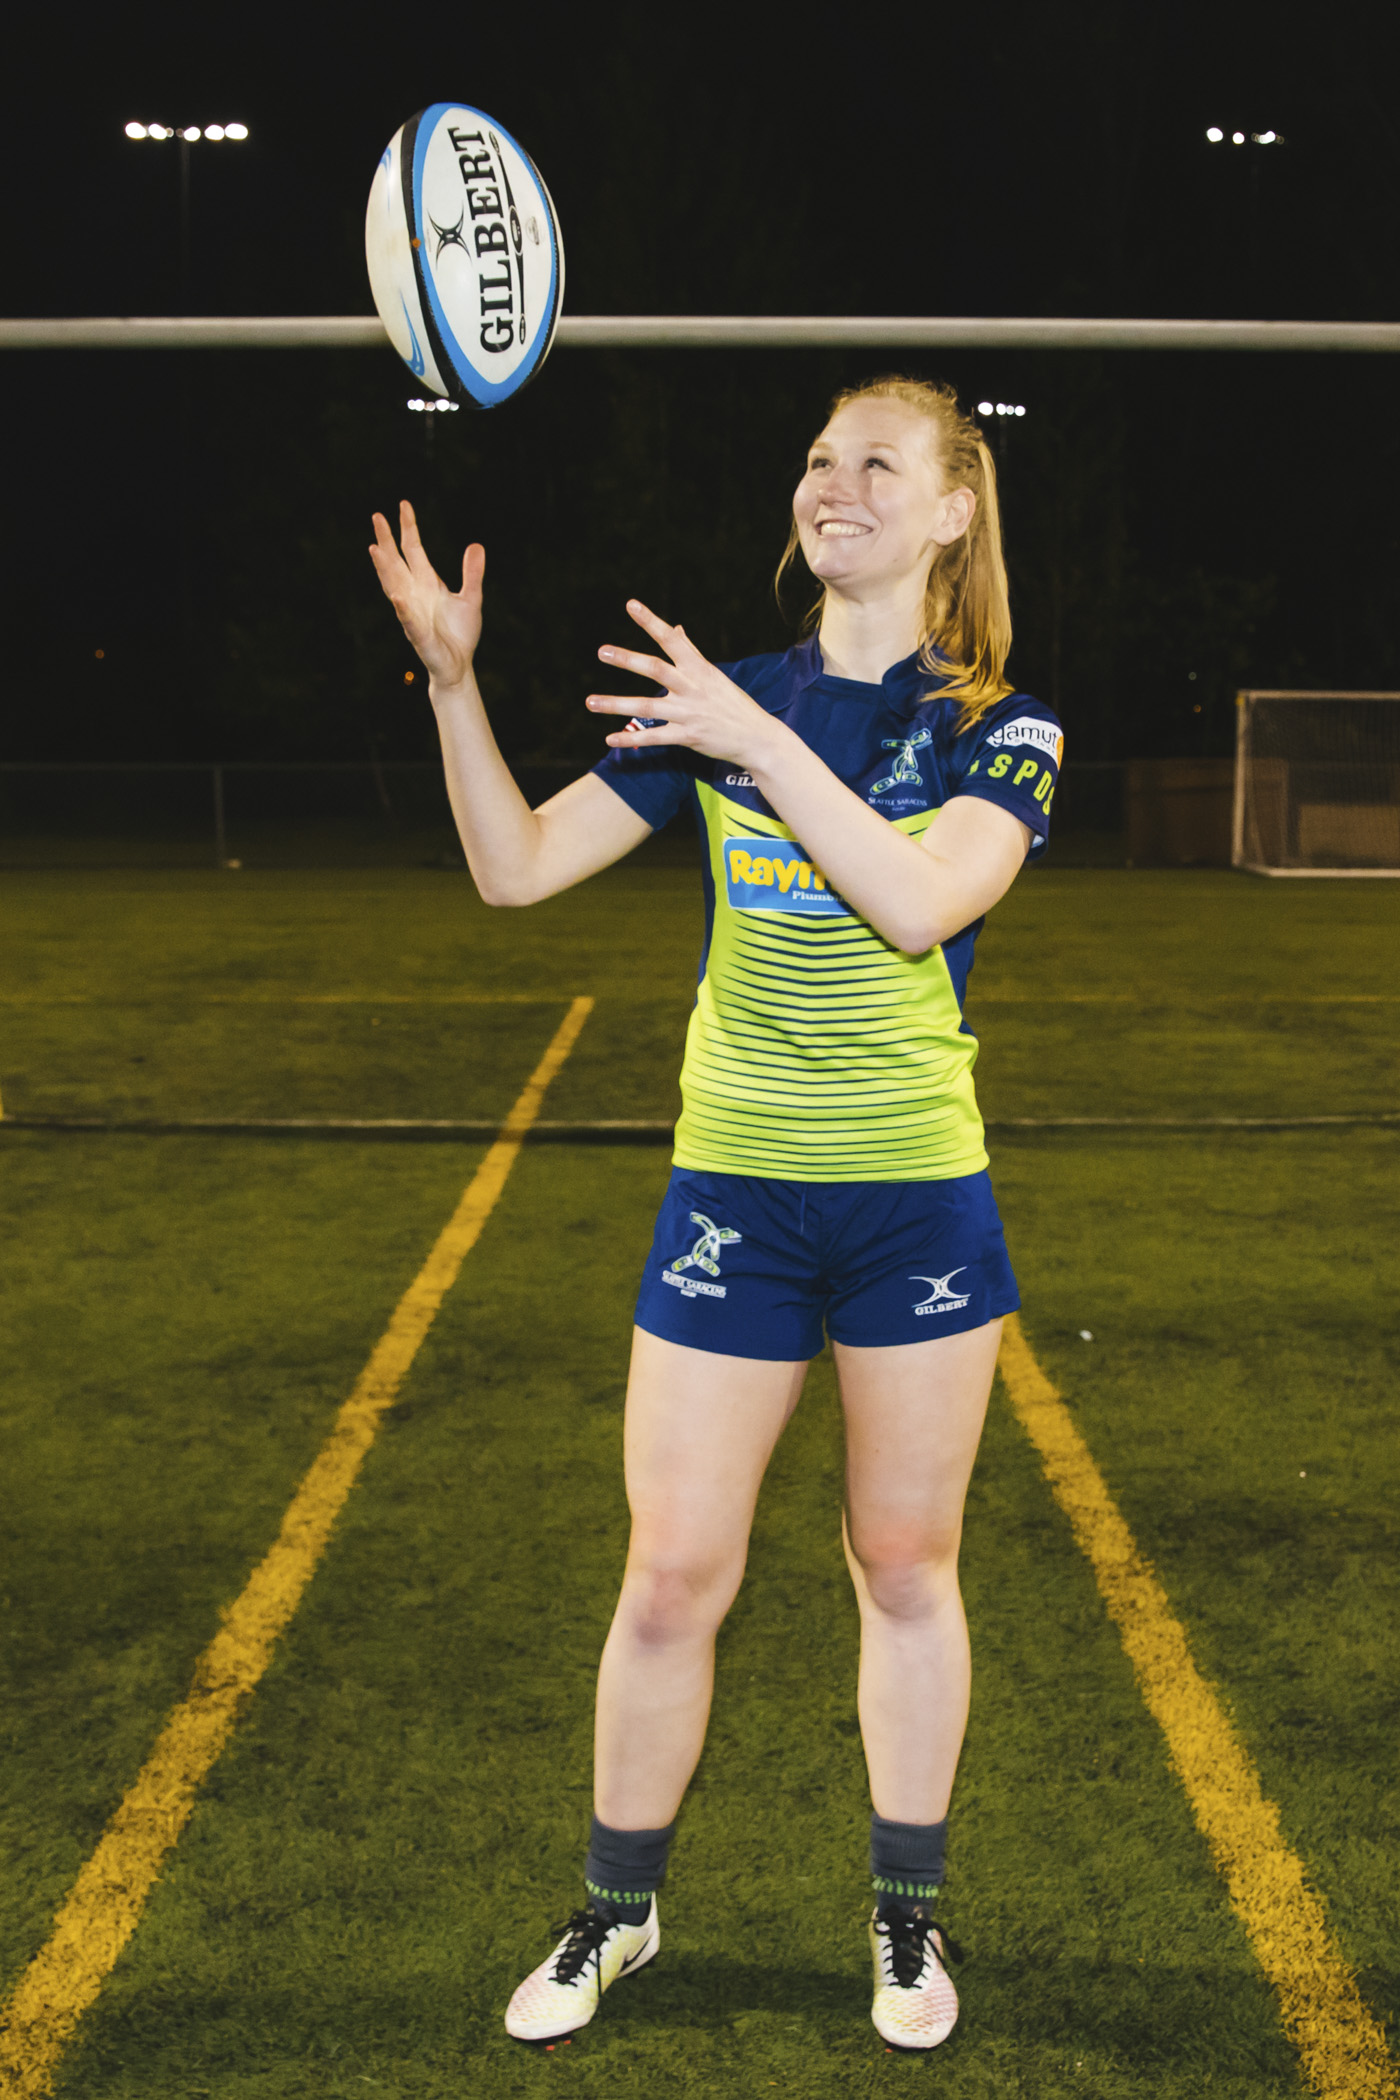 This is Jenny! Jenny plays Flanker and her favorite snack is Oreos. Also, she dates Scott Dean from the Seawolves, fun fact! (Image: Sunita Martini / Seattle Refined).